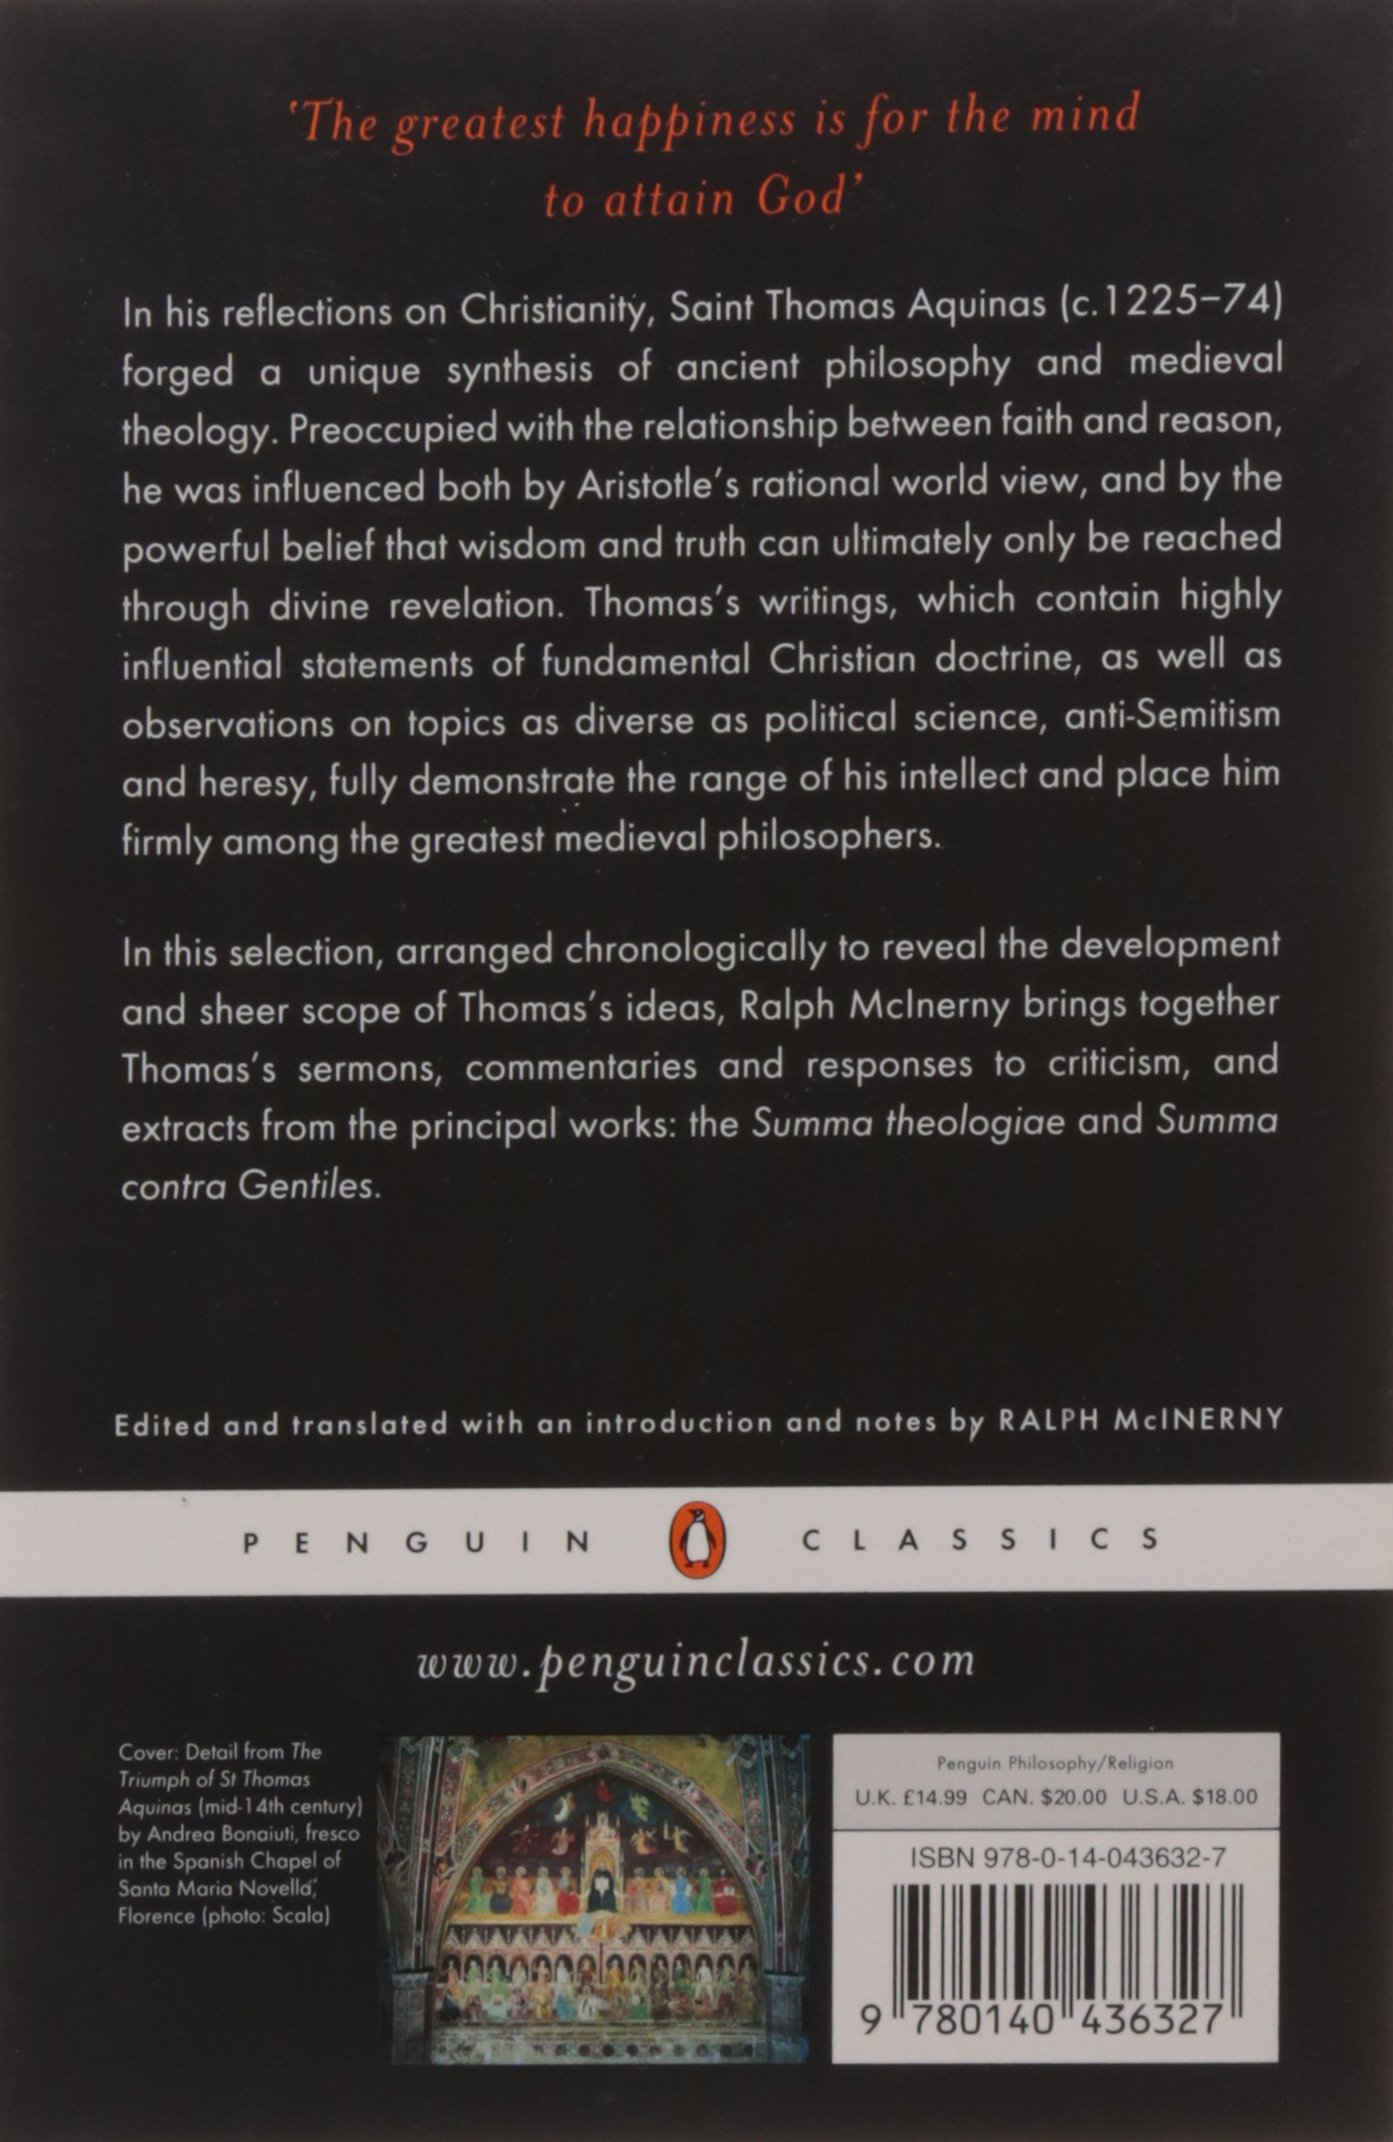 thomas aquinas selected writings penguin classics thomas thomas aquinas selected writings penguin classics thomas aquinas ralph mcinerny 9780140436327 com books